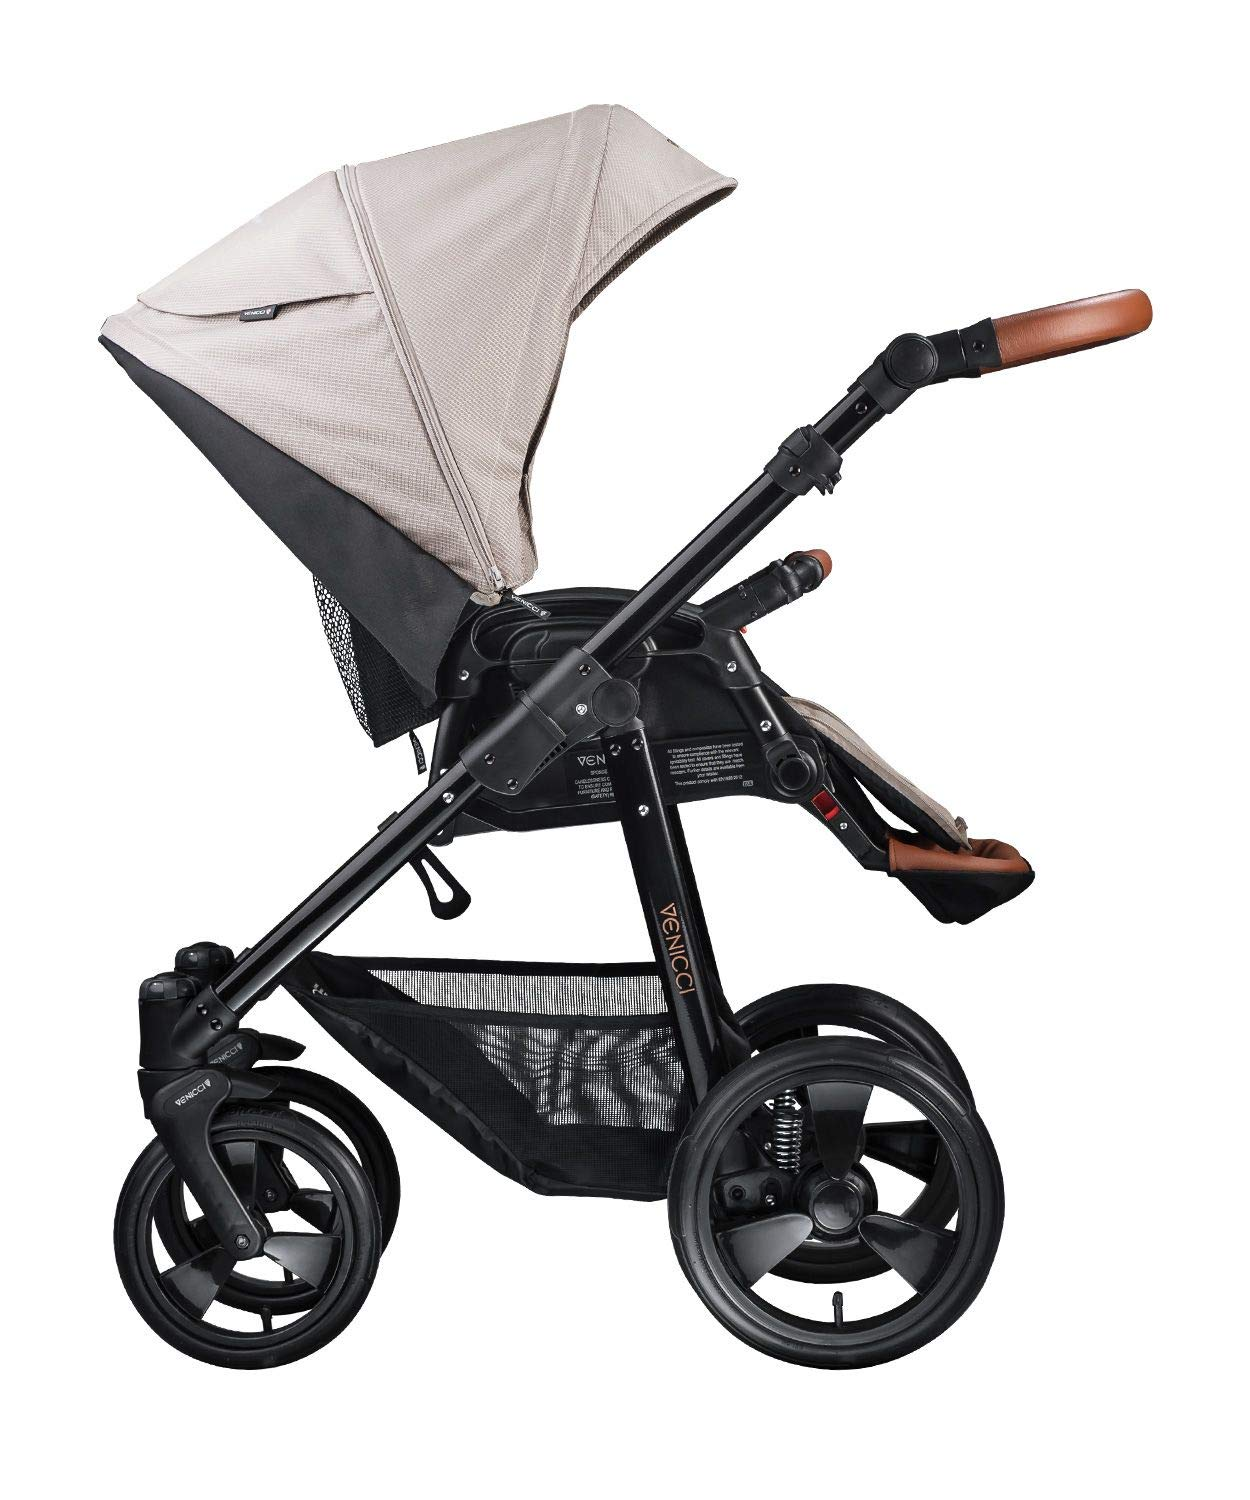 Venicci Gusto 2-in-1 Travel System - Cream - with Carrycot + Changing Bag + Footmuff + Raincover + Mosquito Net + 5-Point Harness and UV 50+ Fabric + Cup Holder  2-in-1 Pram and Pushchair with custom travel options Suitable for your baby from birth until approximately 36 months 5-point harness to enhance the safety of your child 3